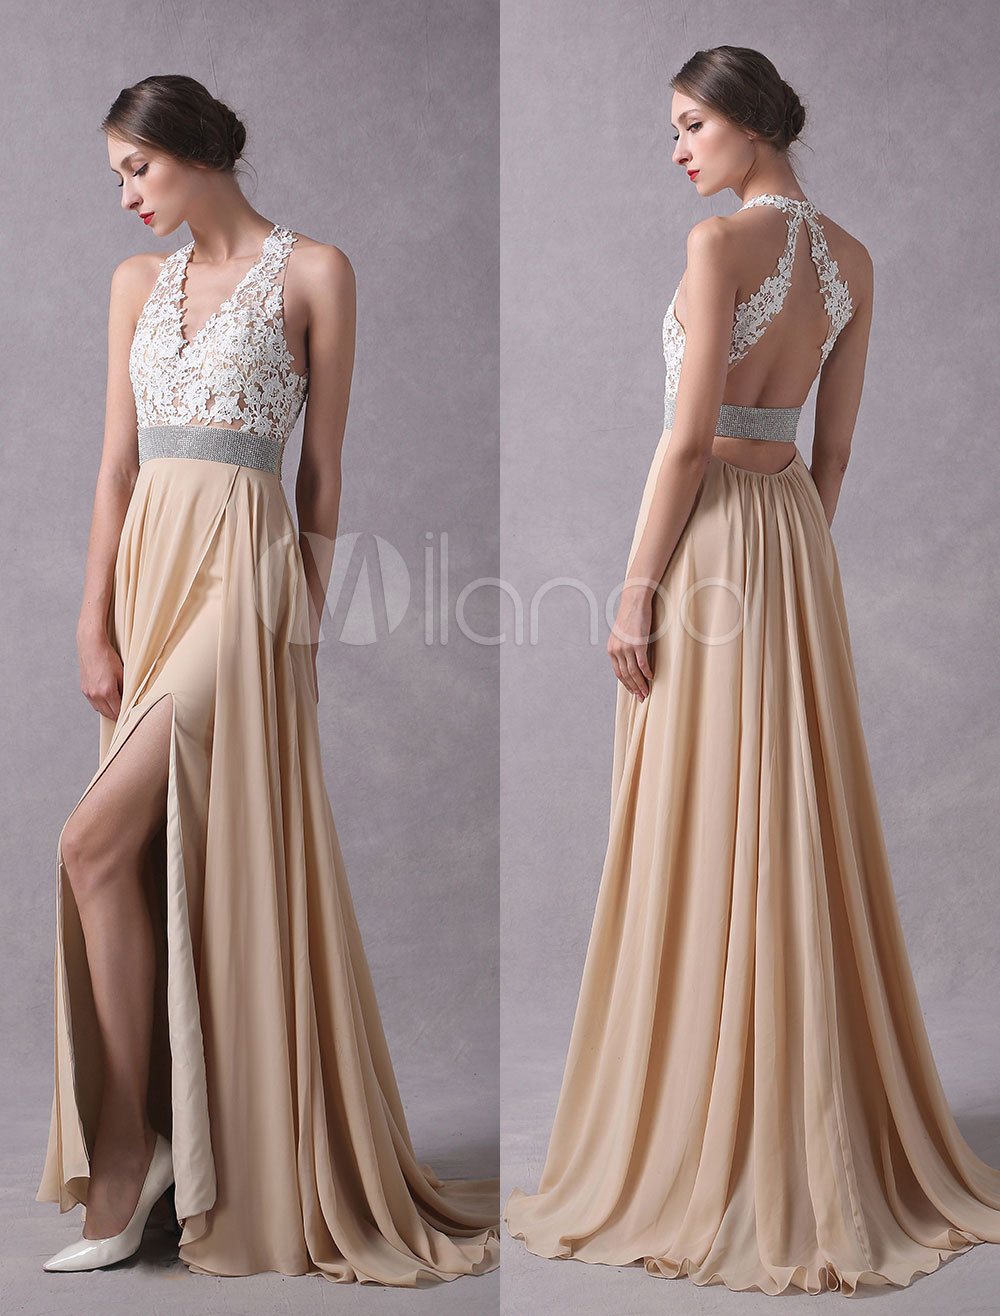 Prom Dresses 2018 Long Champagne High Split Lace Chiffon Back Design Halter Formal Party Dresses With Train